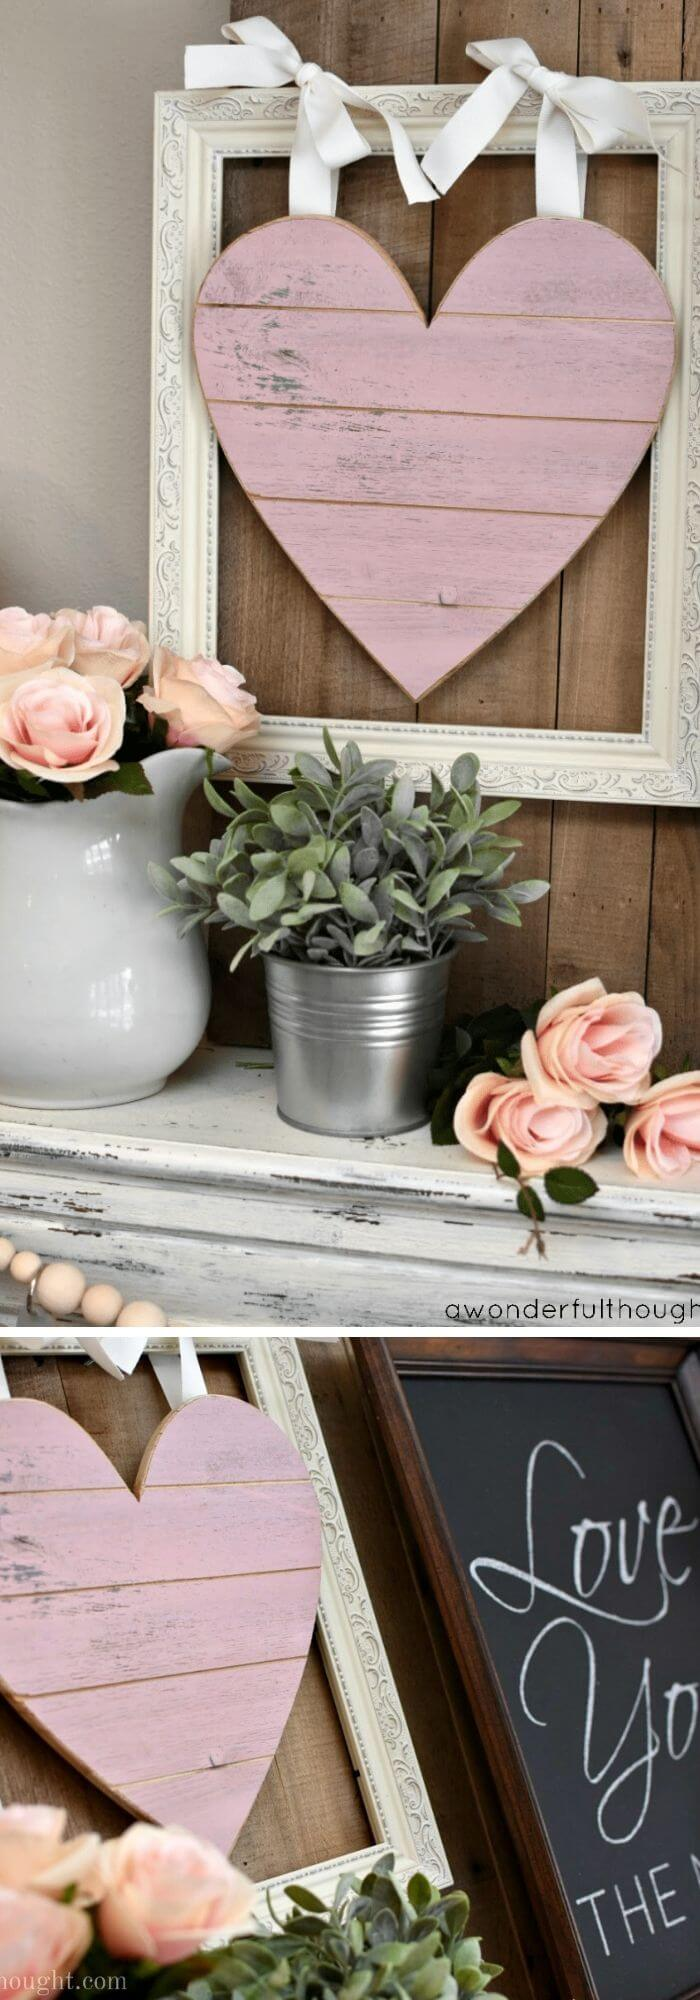 Knot with ribbons - Rustic Wood Heart Projects & Ideas